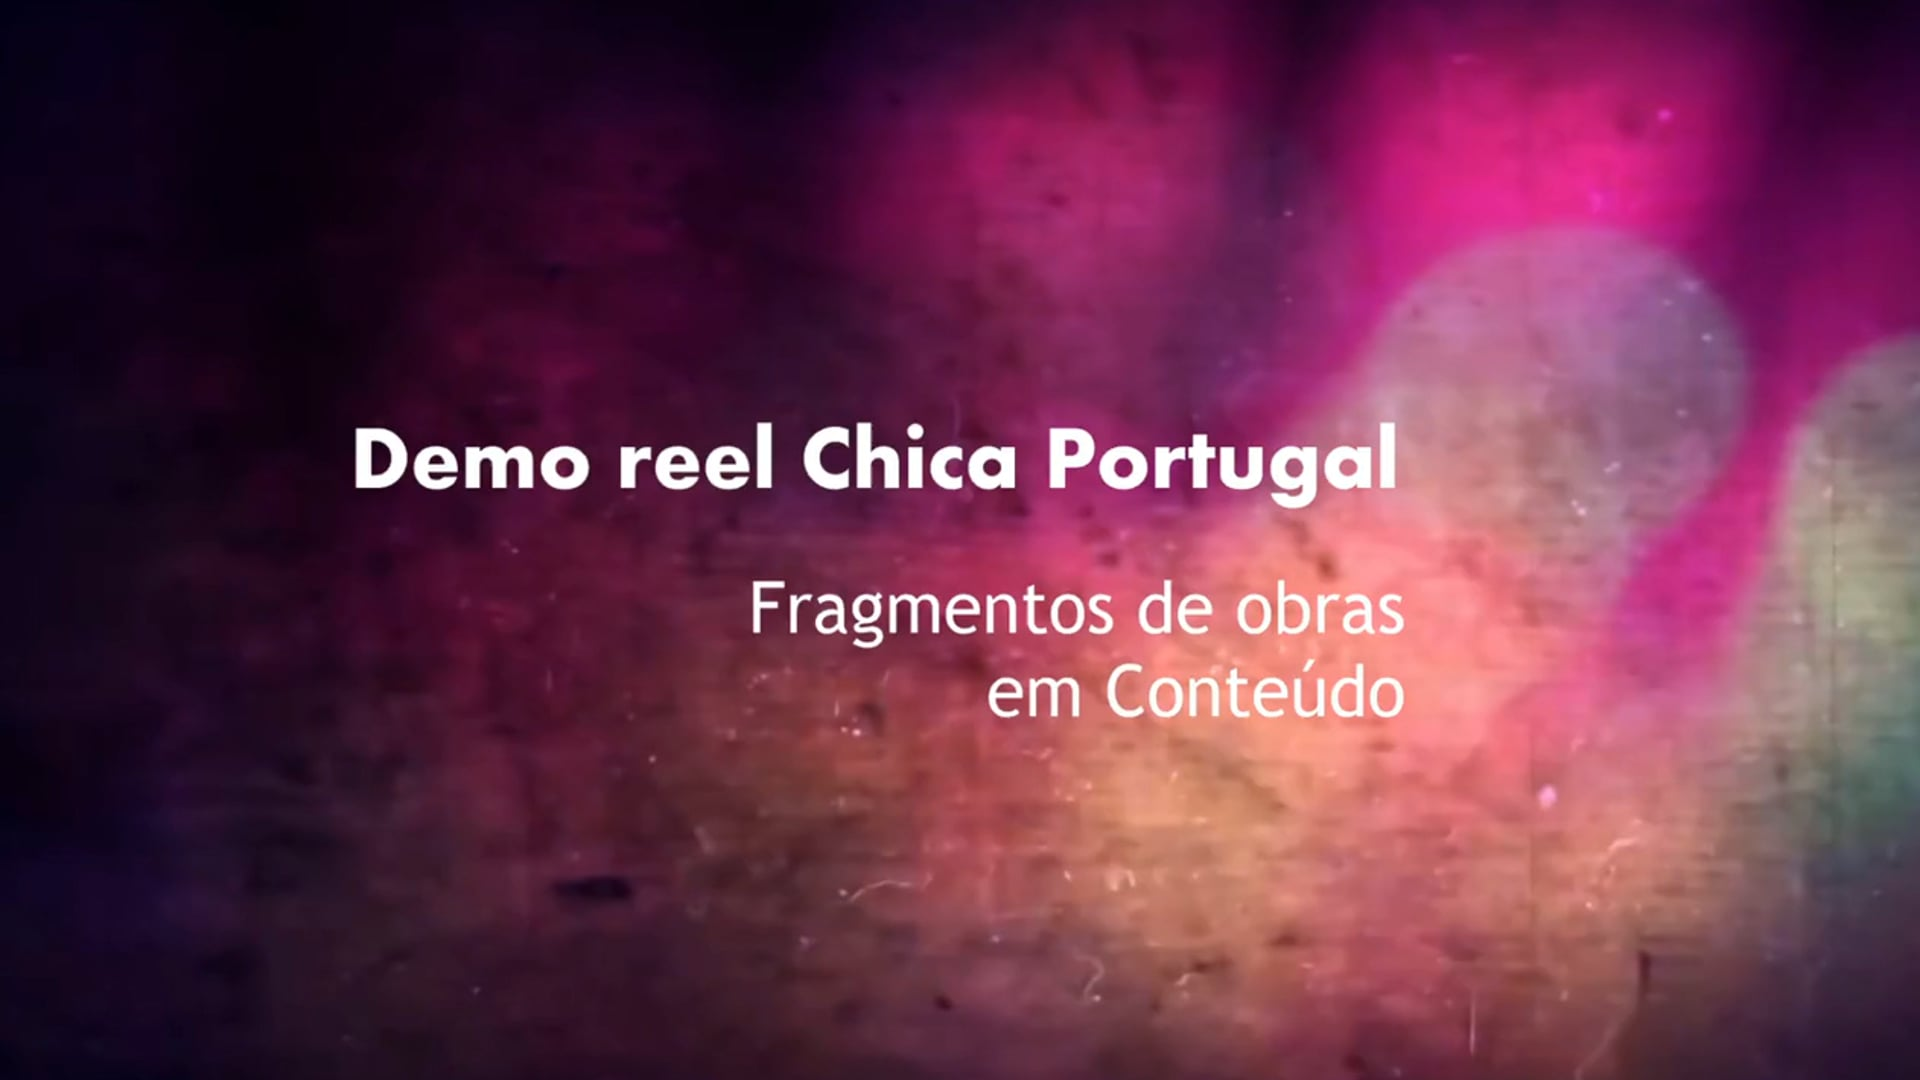 Demo Reel Chica Portugal 2020